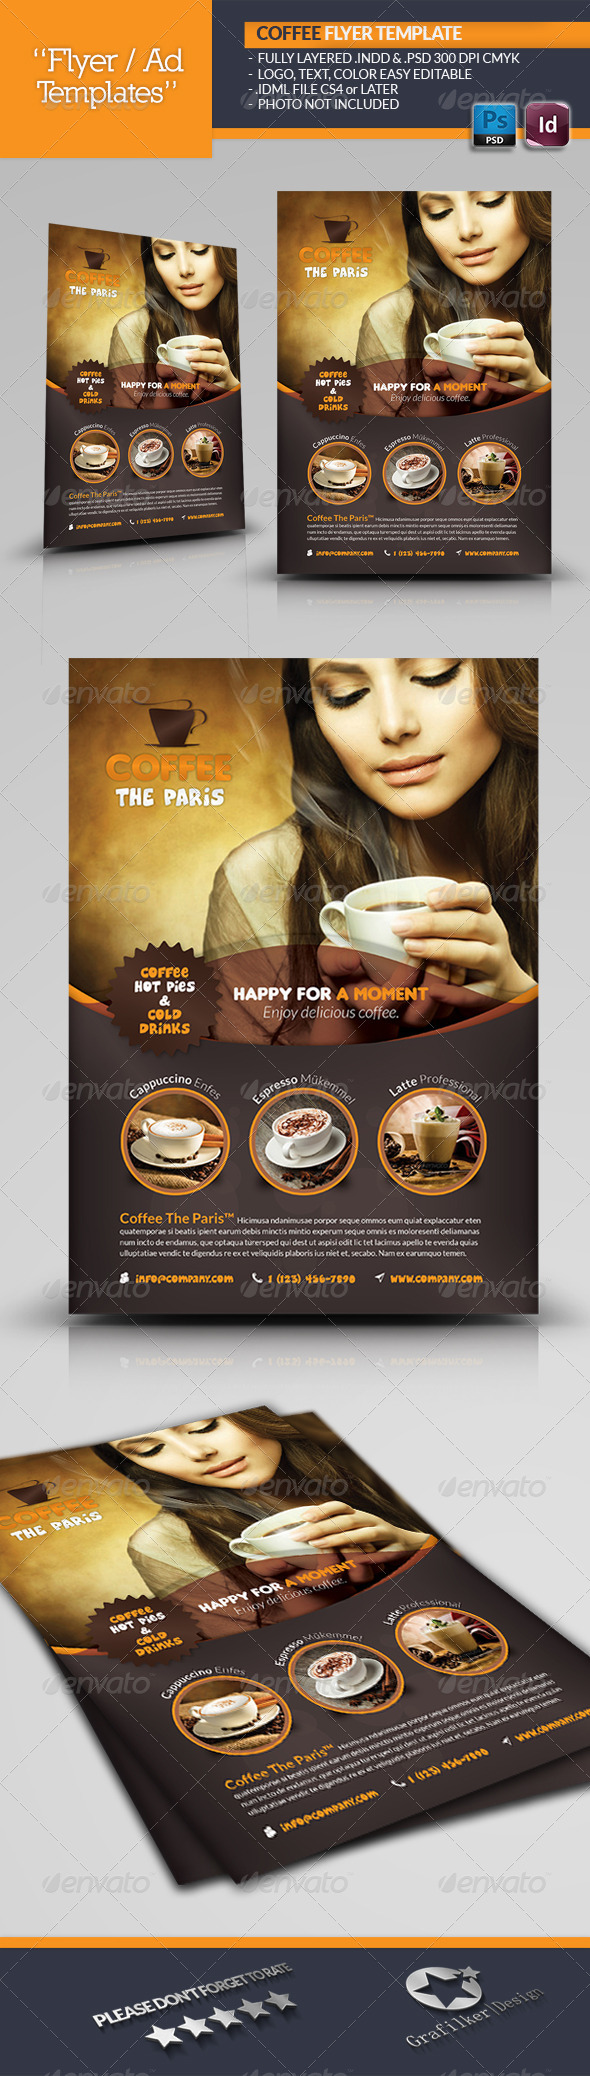 Coffee Flyer Template - Corporate Flyers